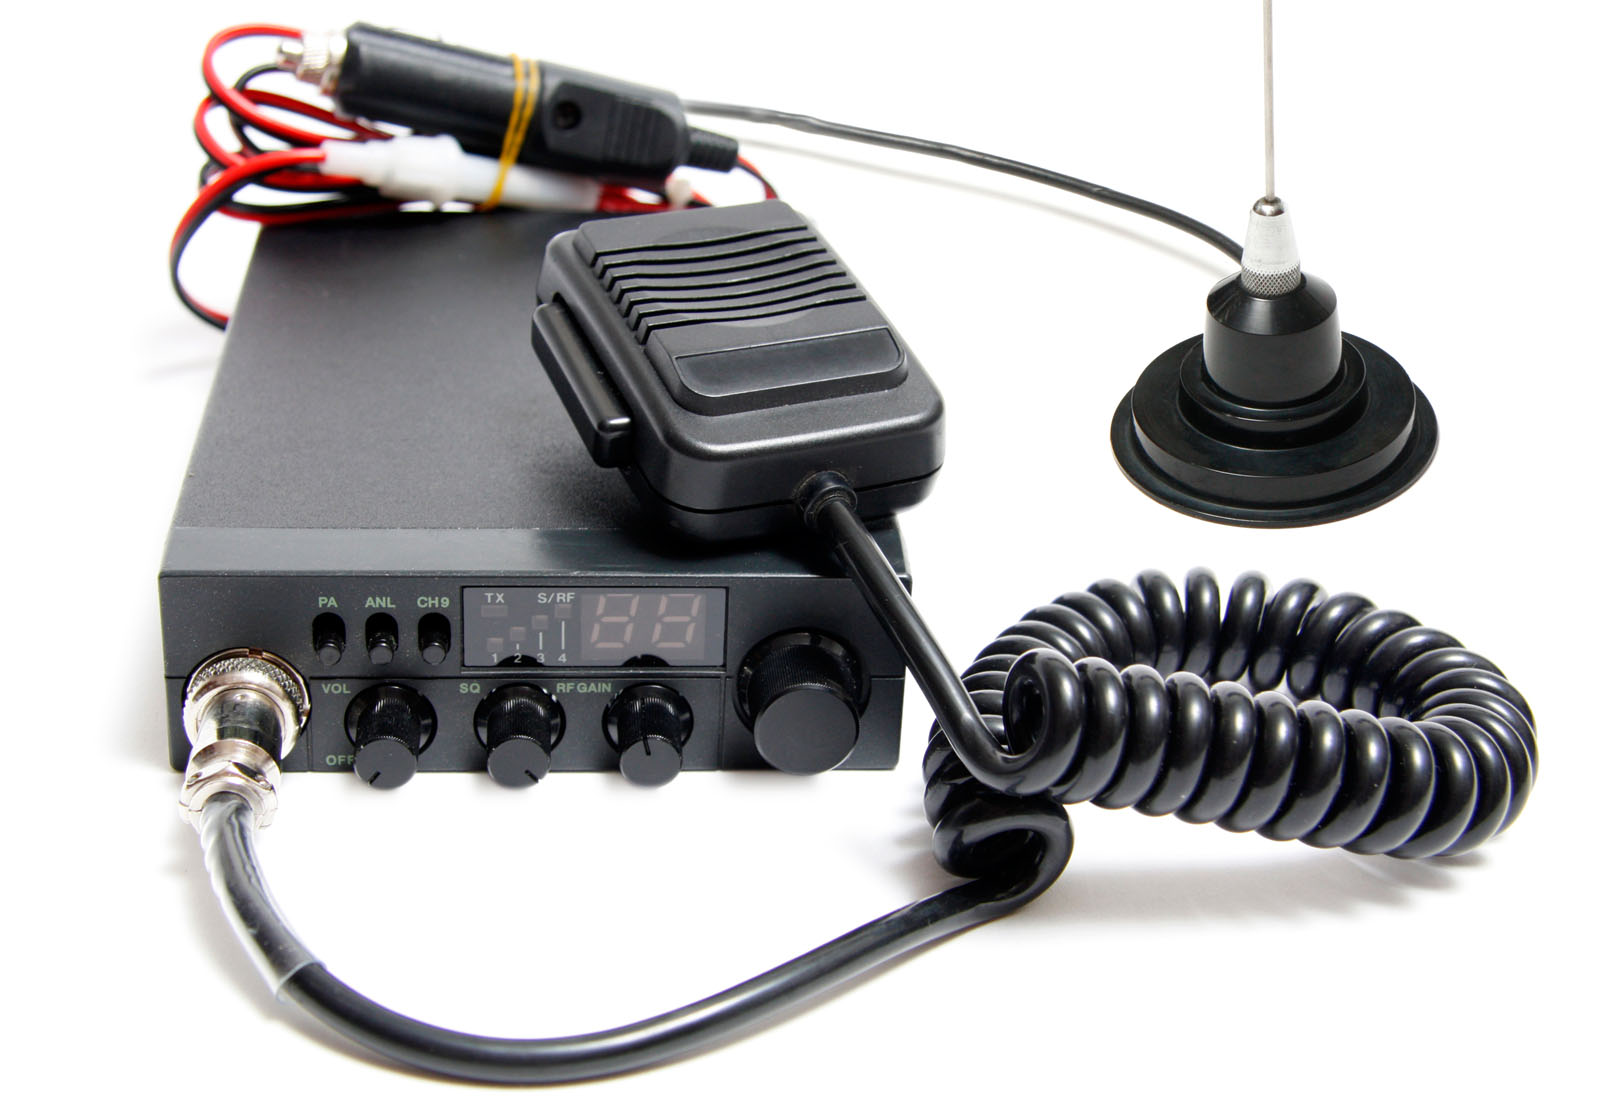 CB radio with microphone